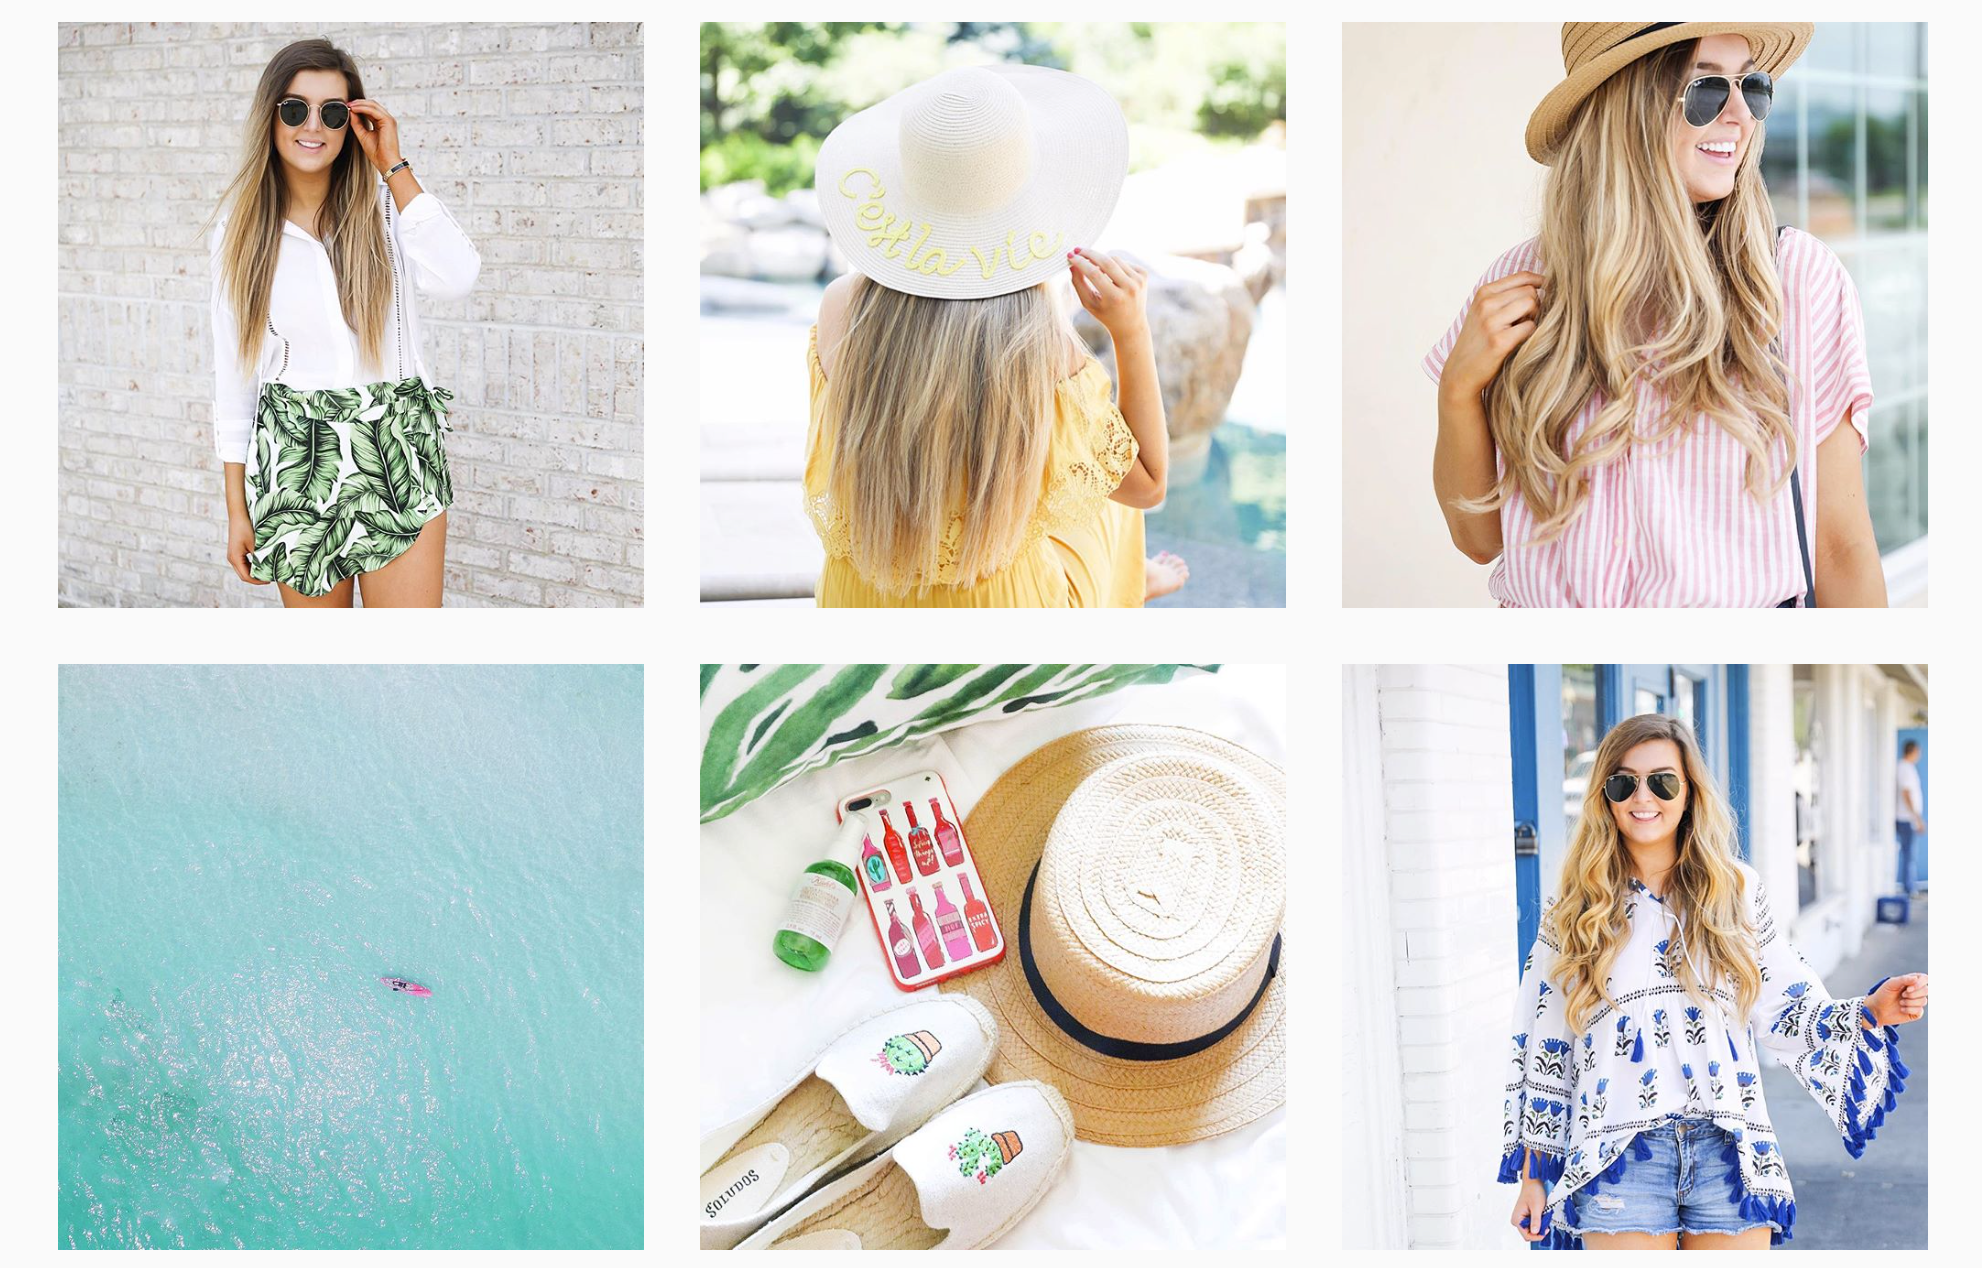 June Instagram Roundup 2017 on fashion Instagram @dailydoseofcharm by fashion blogger daily dose of charm AKA lauren lindmark